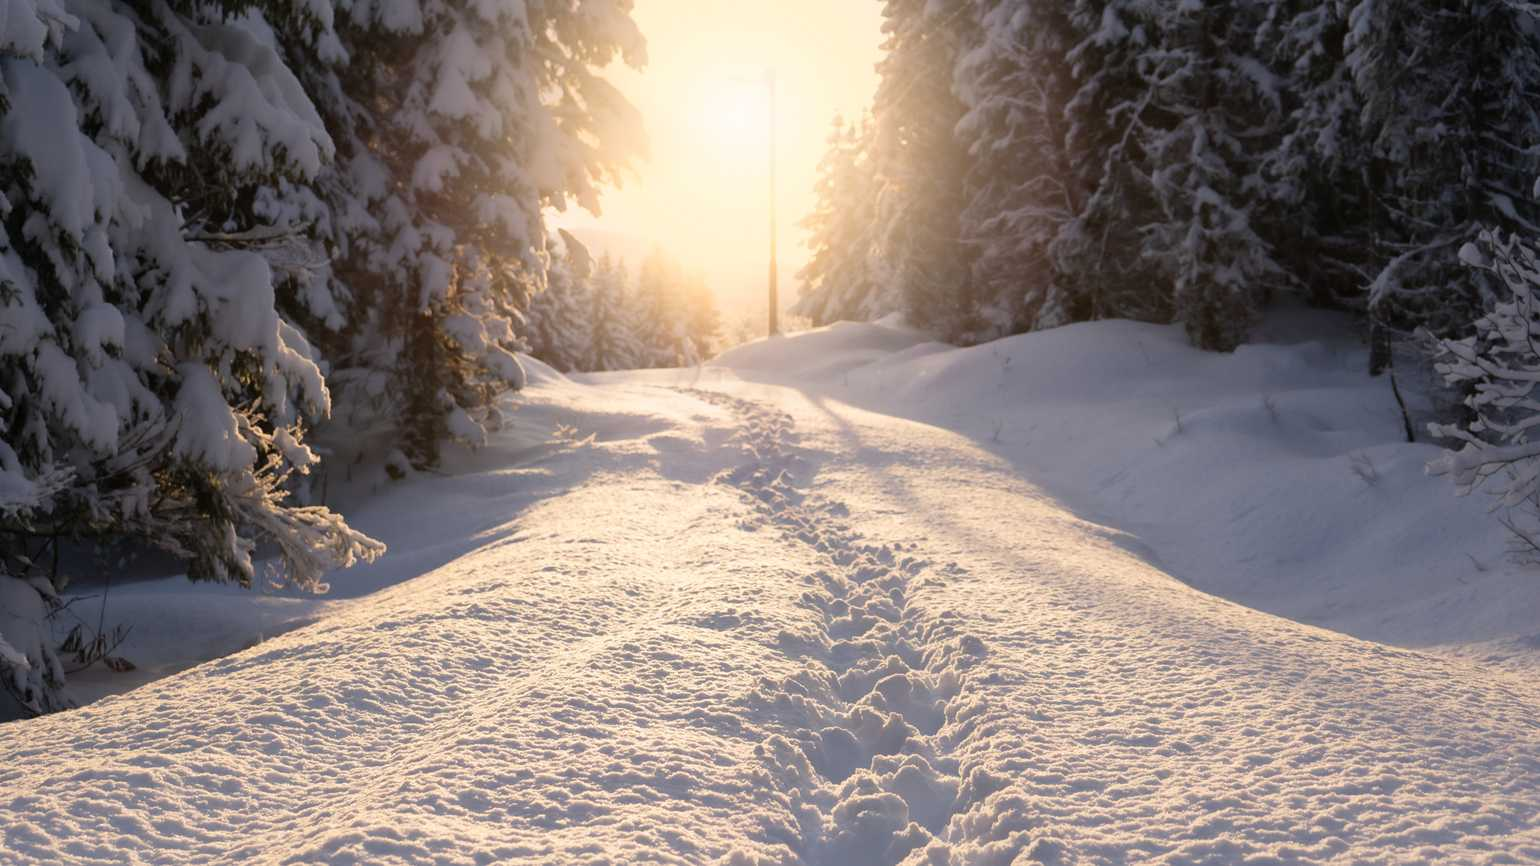 Footprints in snow with sunlight shining through trees; Getty Images